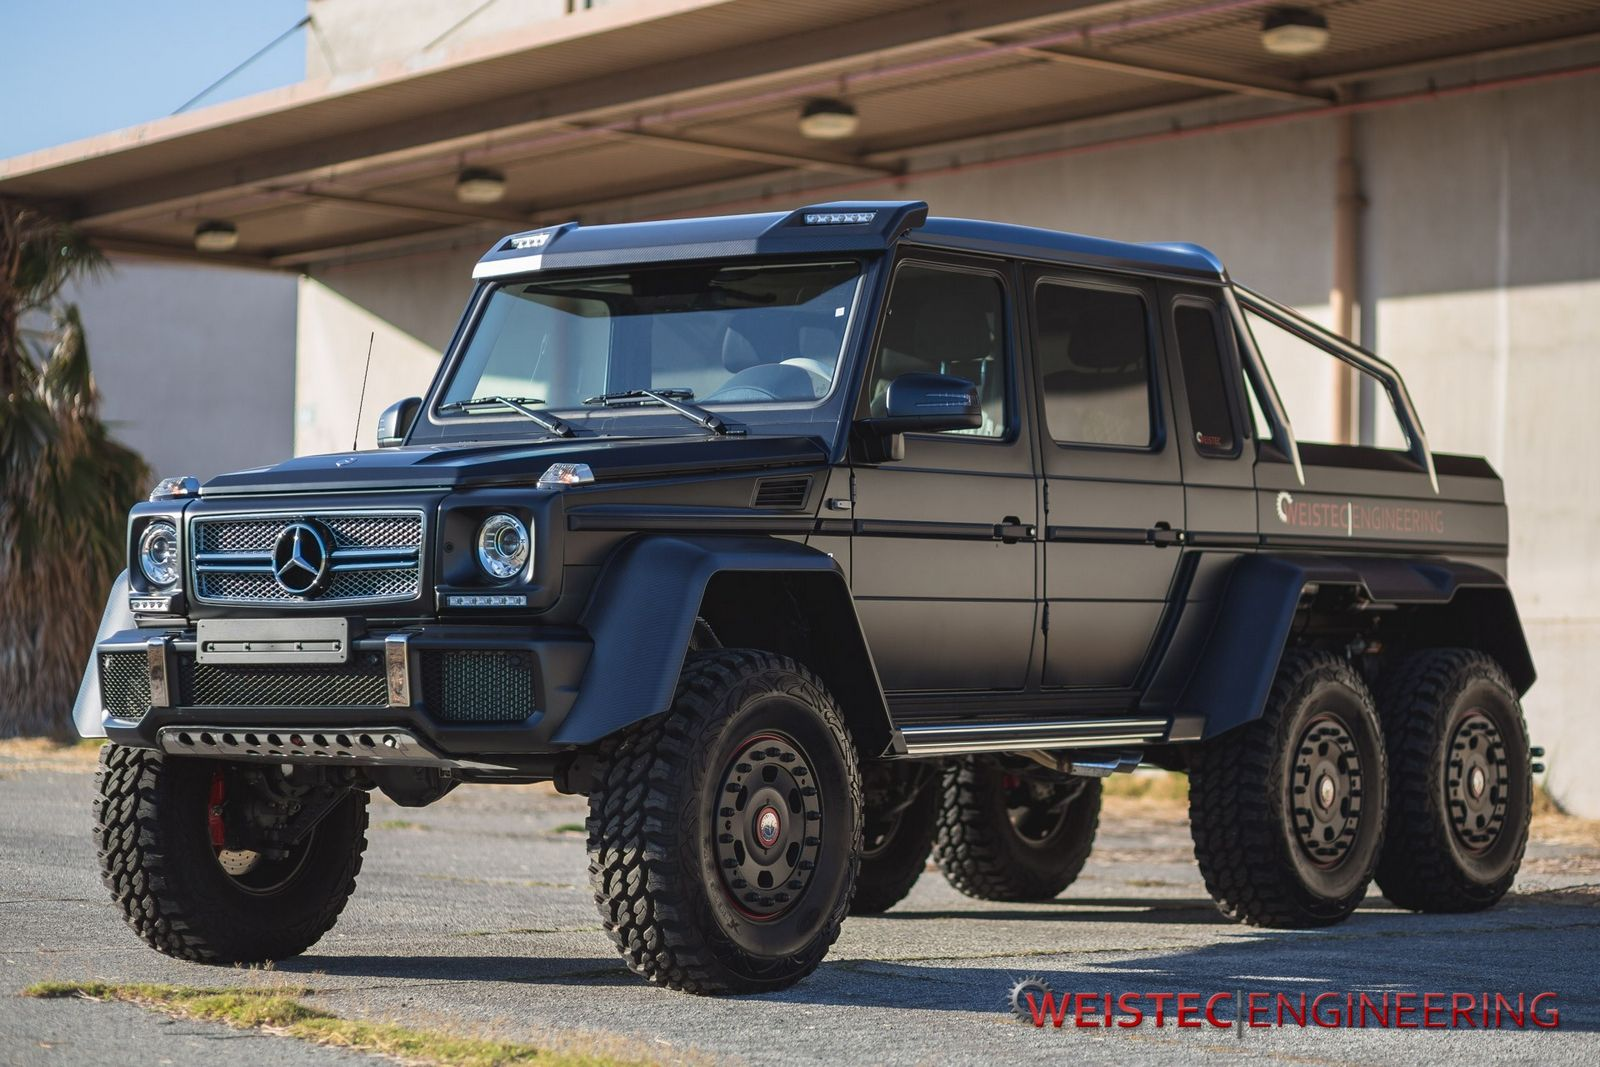 Official mercedes benz g63 amg 6x6 by weistec engineering for G63 mercedes benz